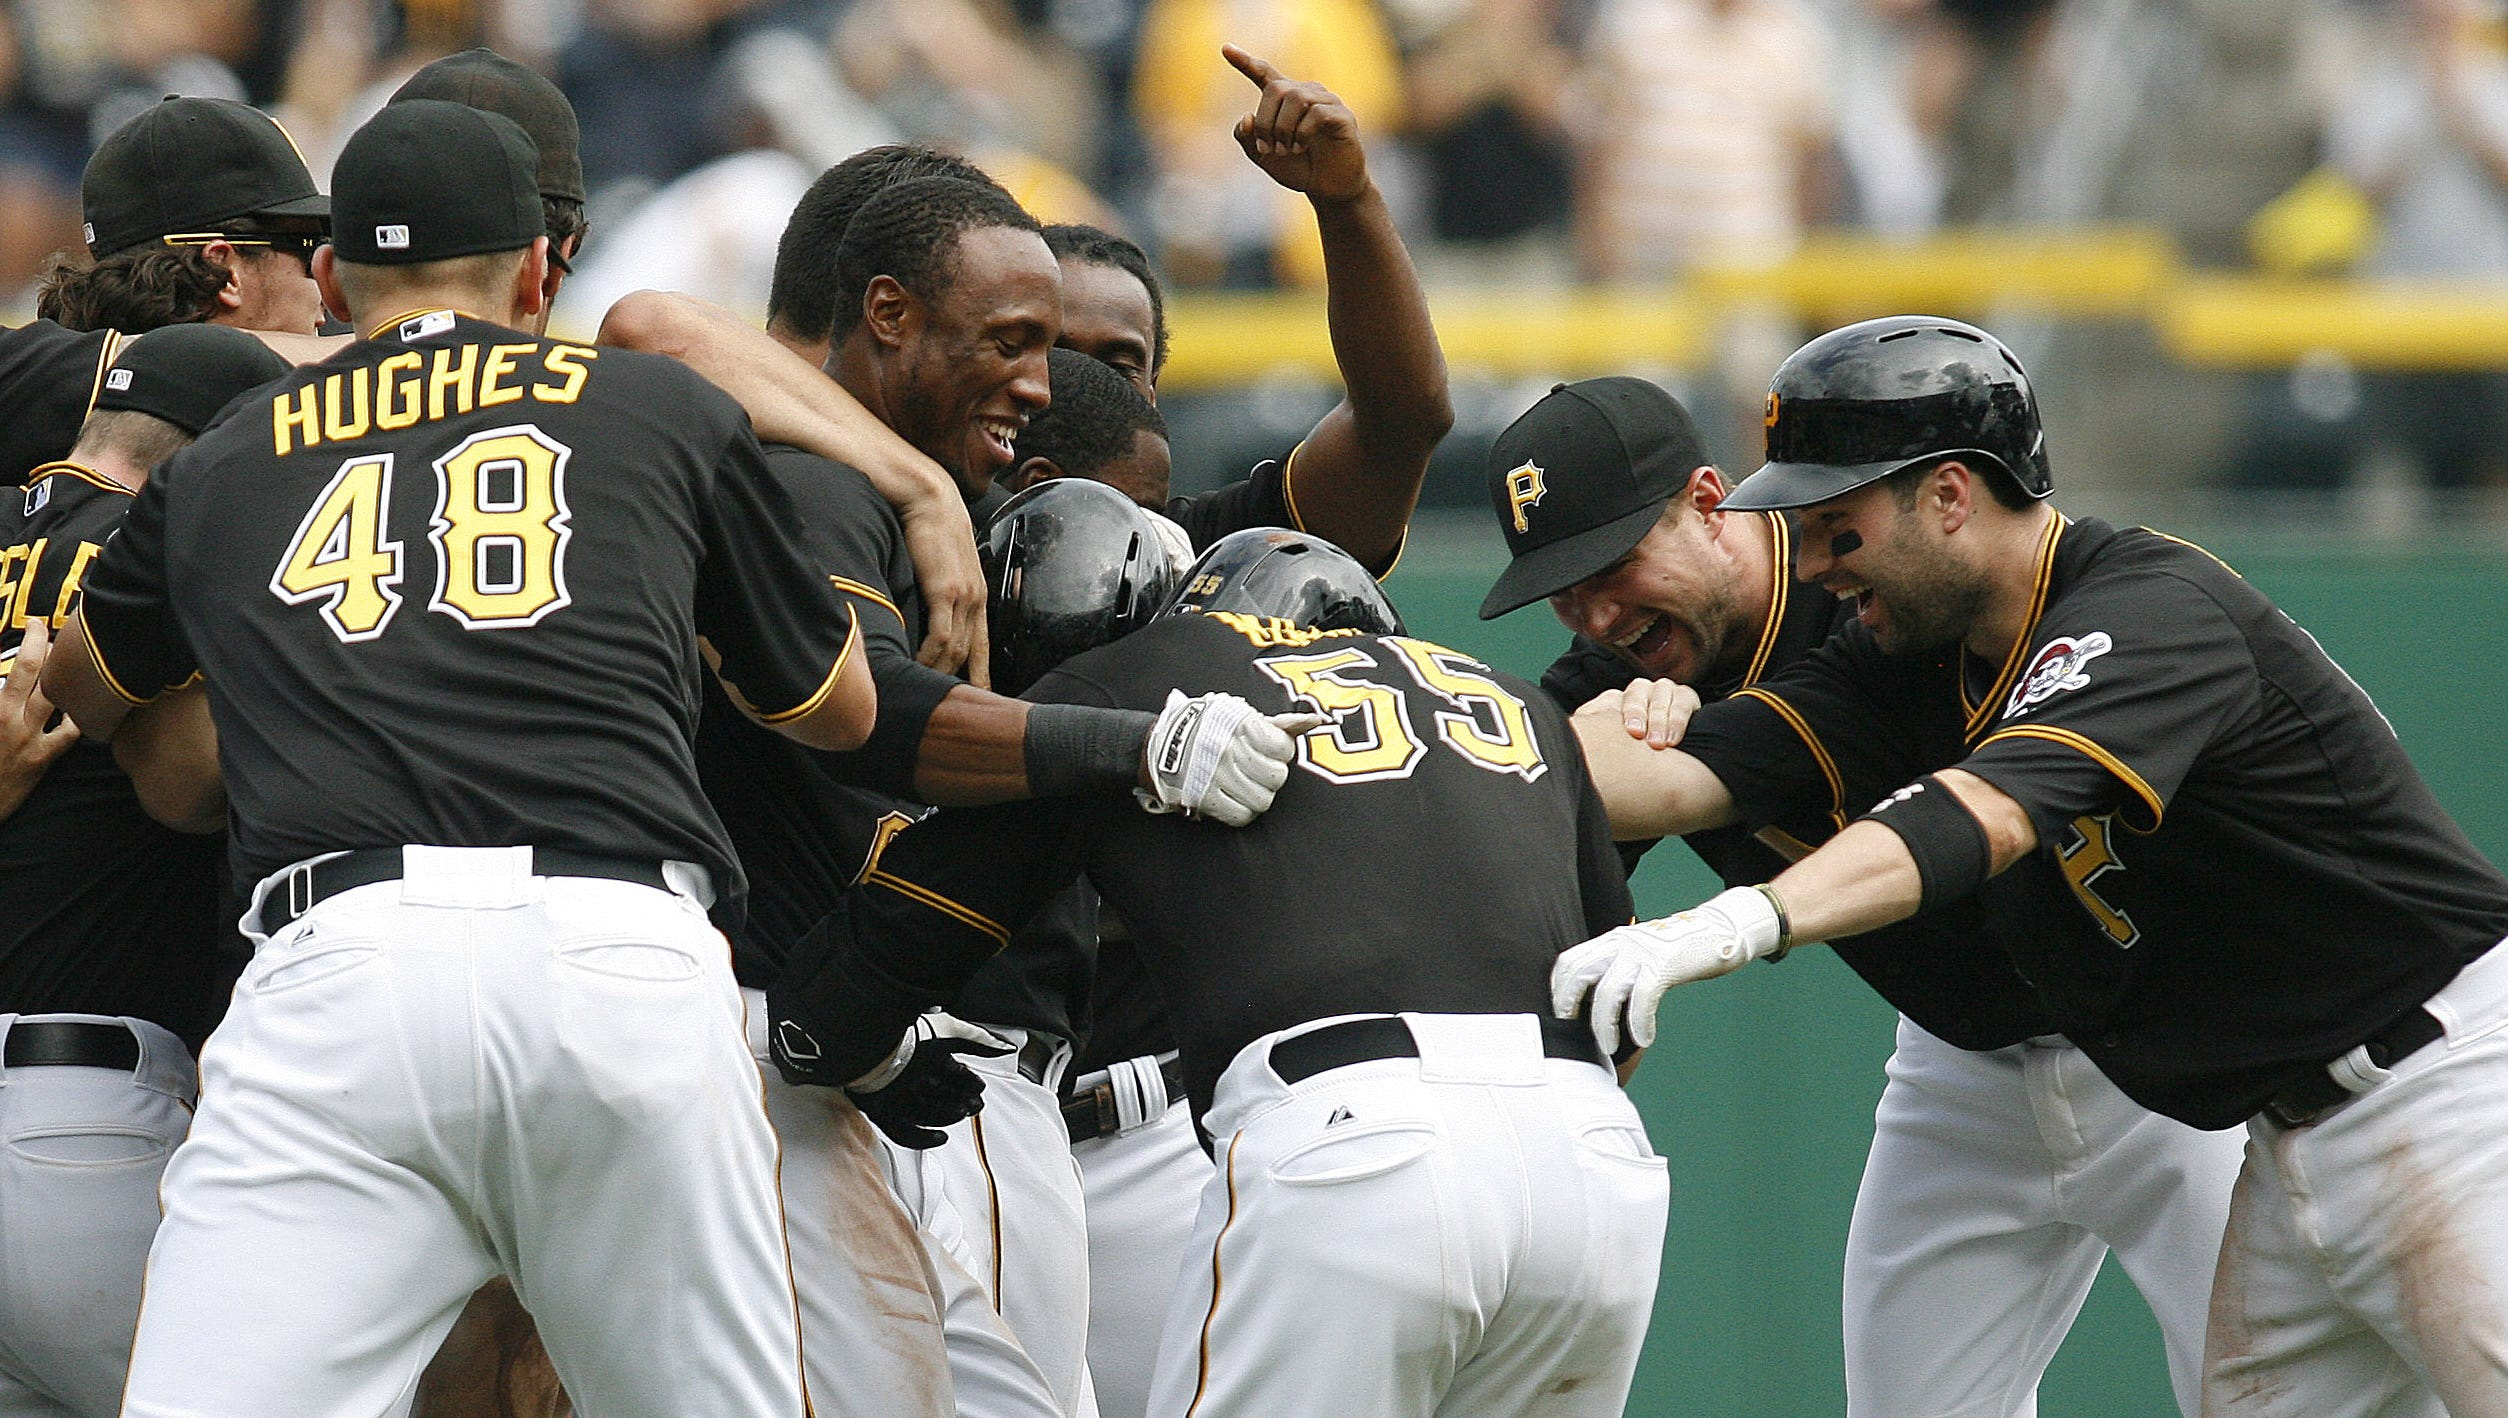 Aug. 8: Pirates catcher Russell Martin (center) is mobbed by teammates after driving in the game-winning run against the Marlins in the 10th inning.